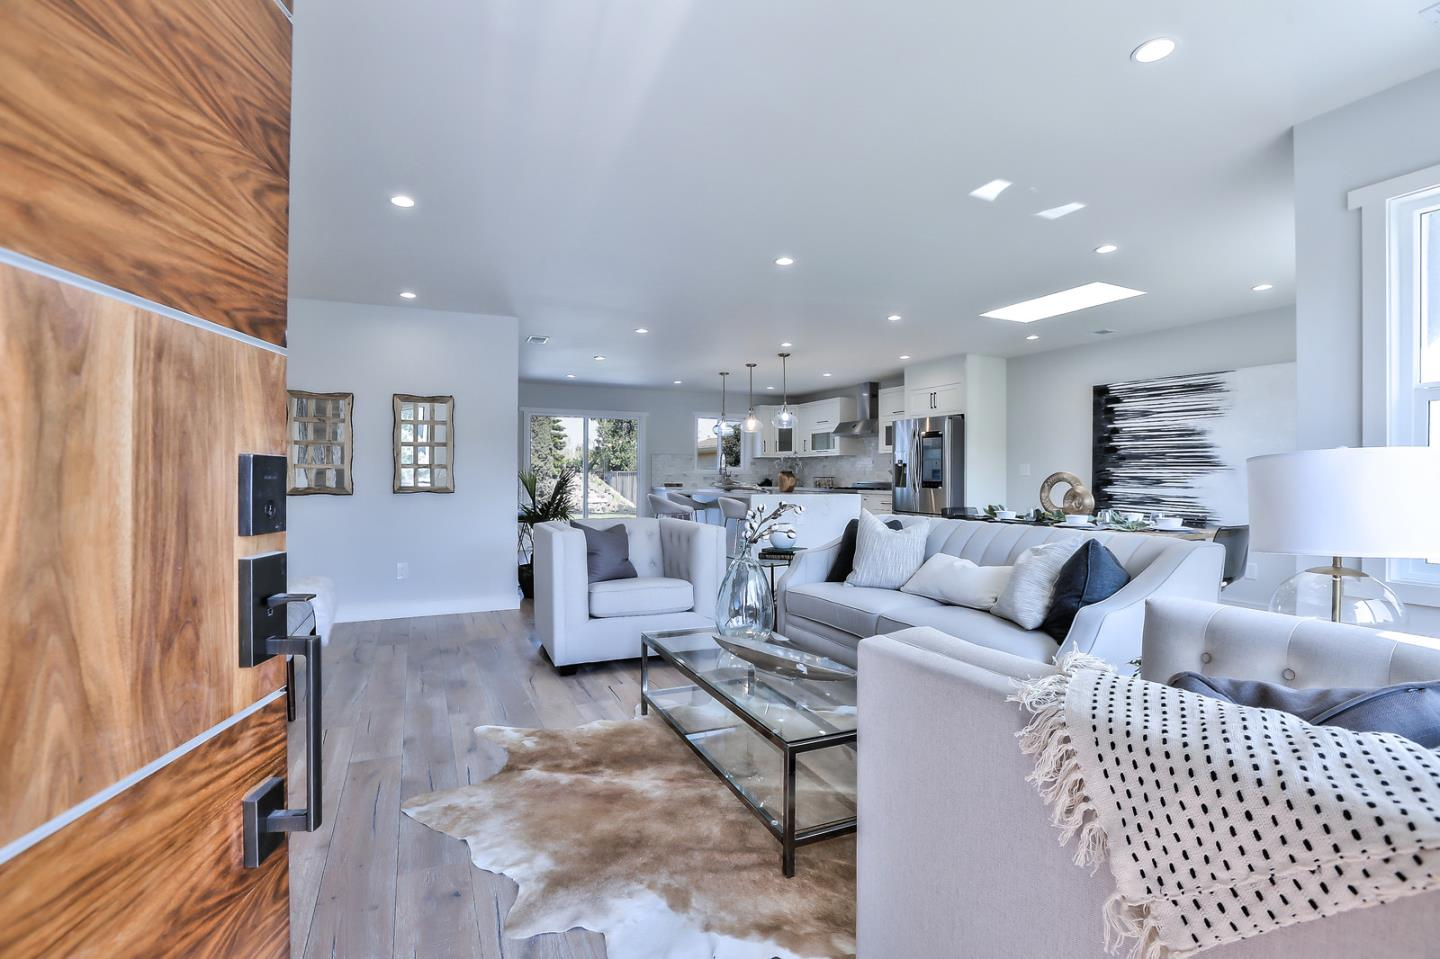 Mike Danao | Better Homes and Gardens Real Estate J F Finnegan